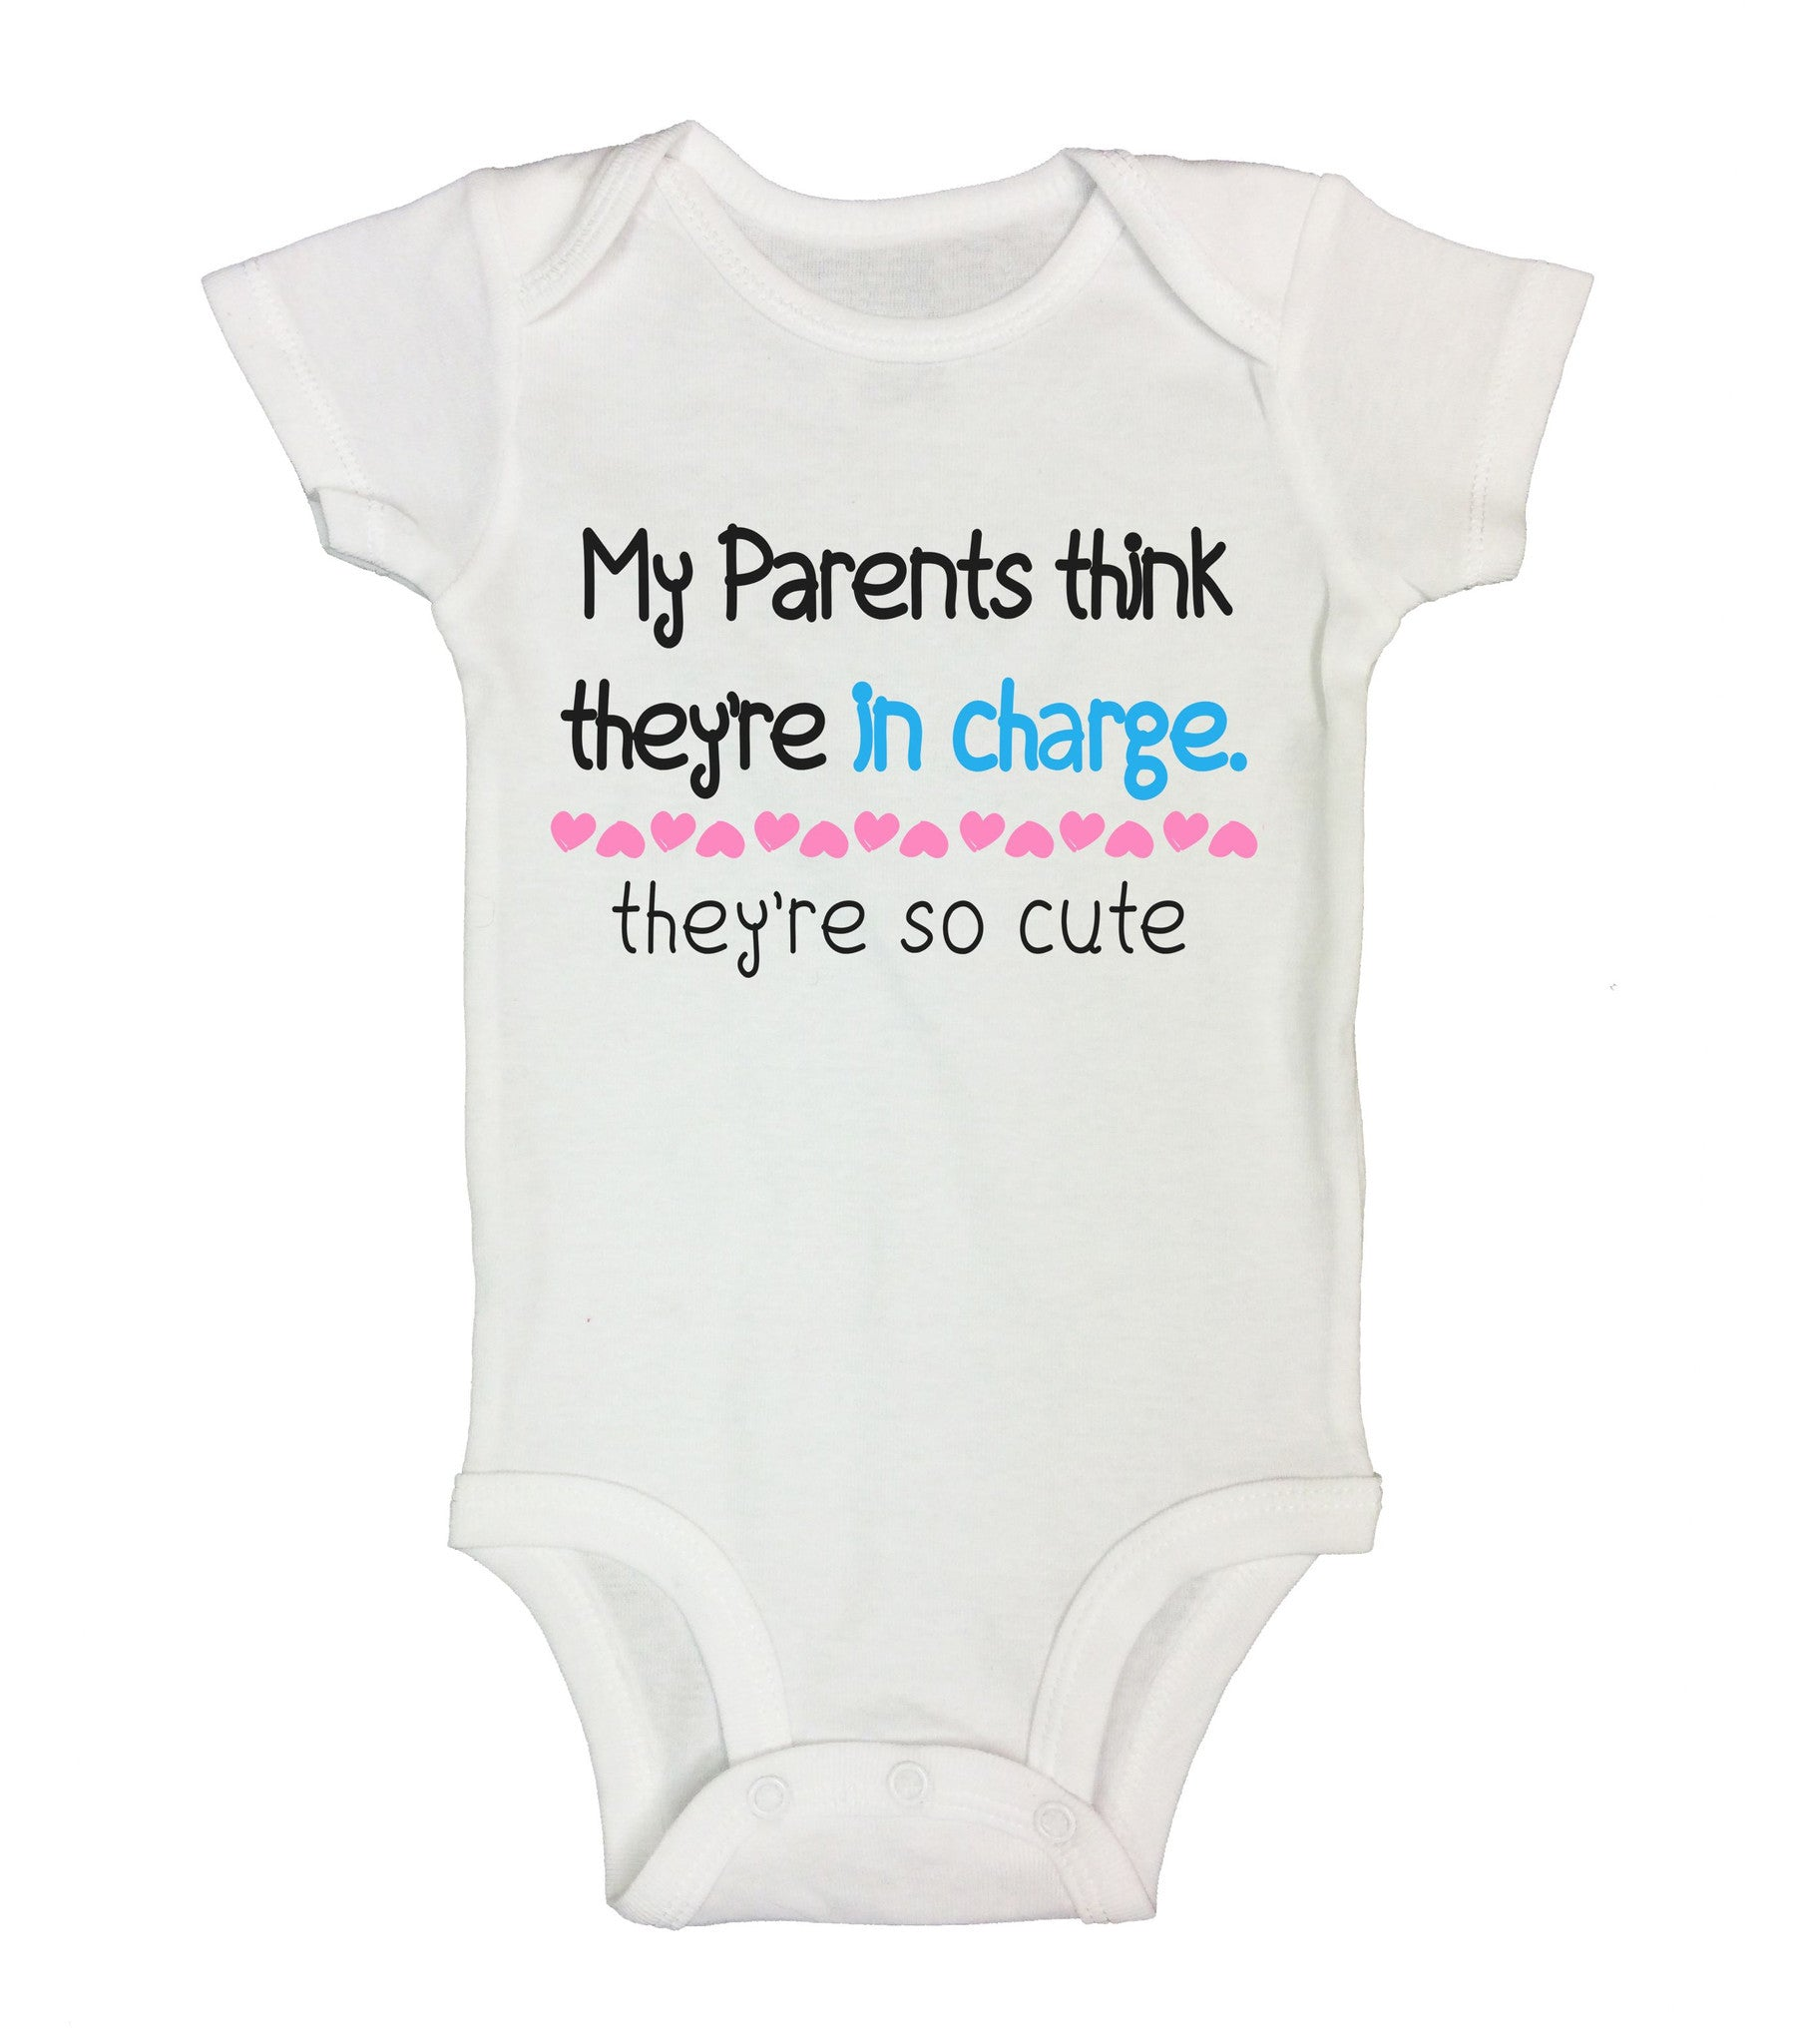 My Parents Think They'Re In Charge. They're So Cute Funny Kids Onesie - B153 - Funny Shirts Tank Tops Burnouts and Triblends  - 2